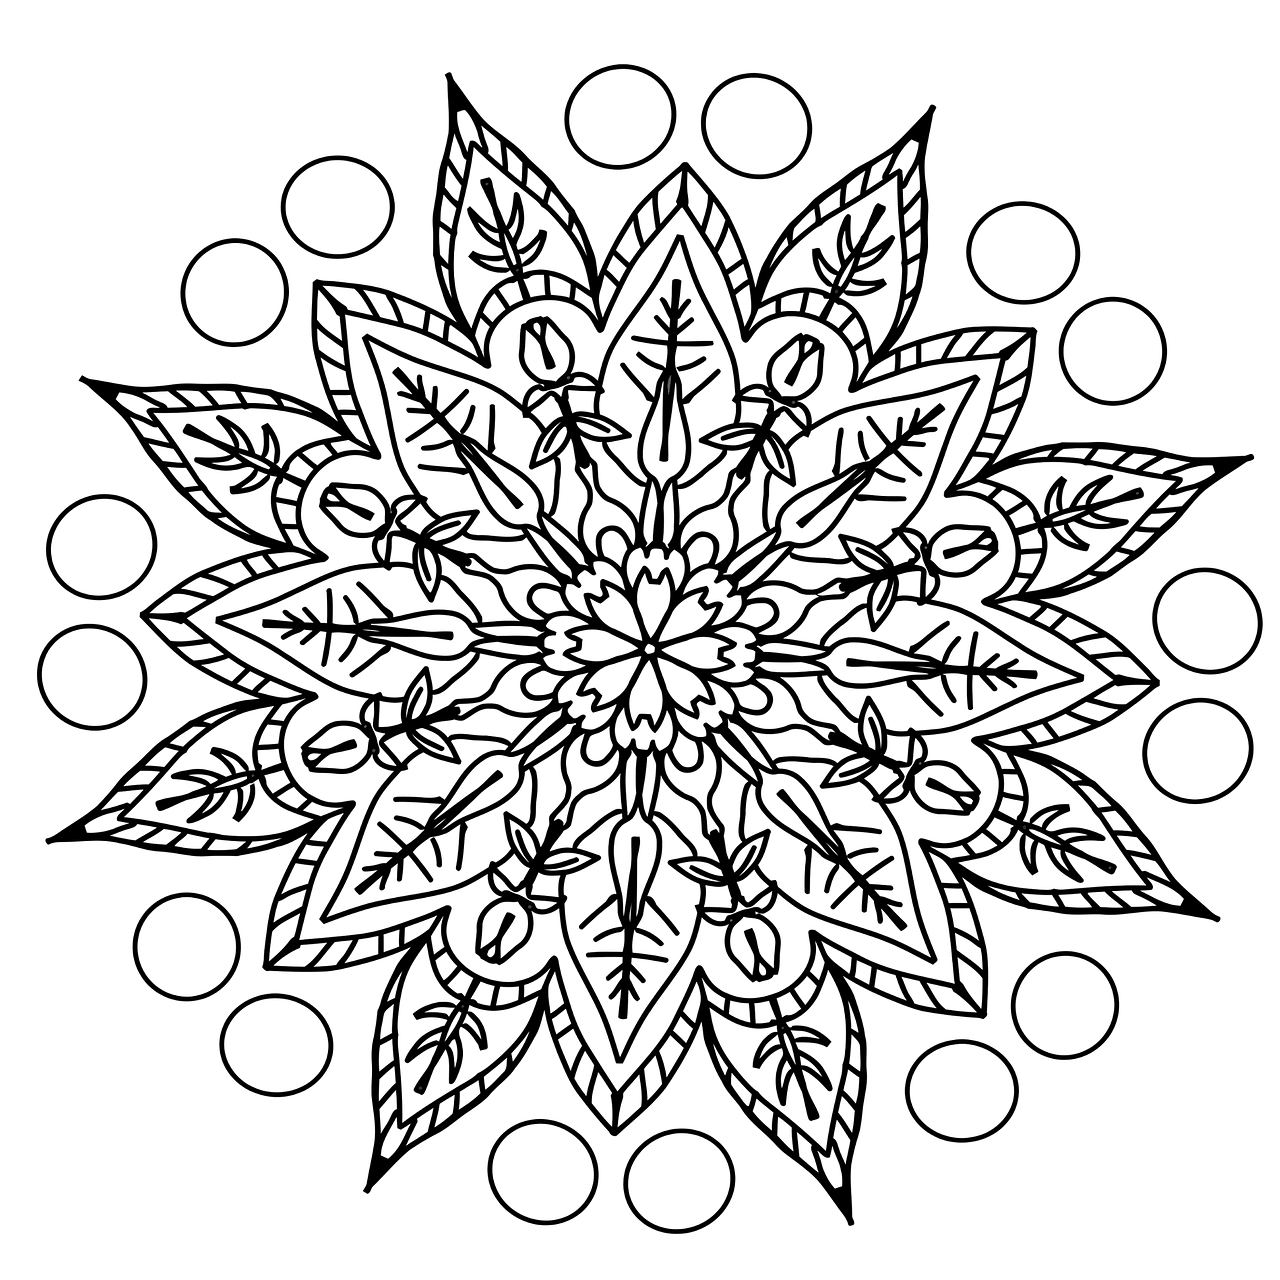 Drawing pencil pattern free picture